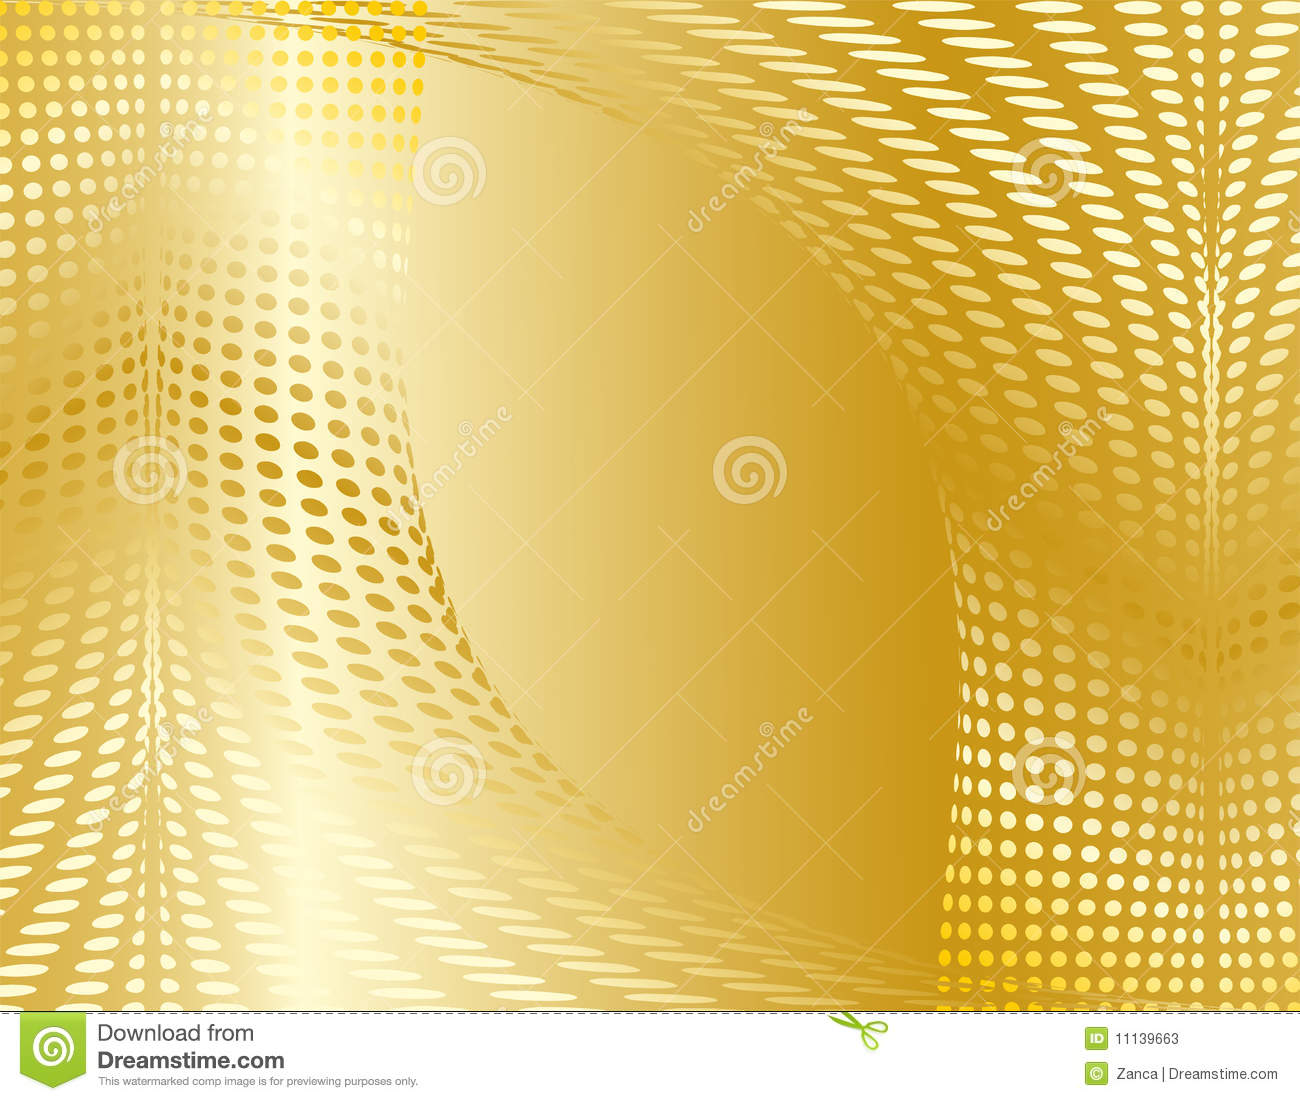 vectors files red photos psd golden download and gold background design free